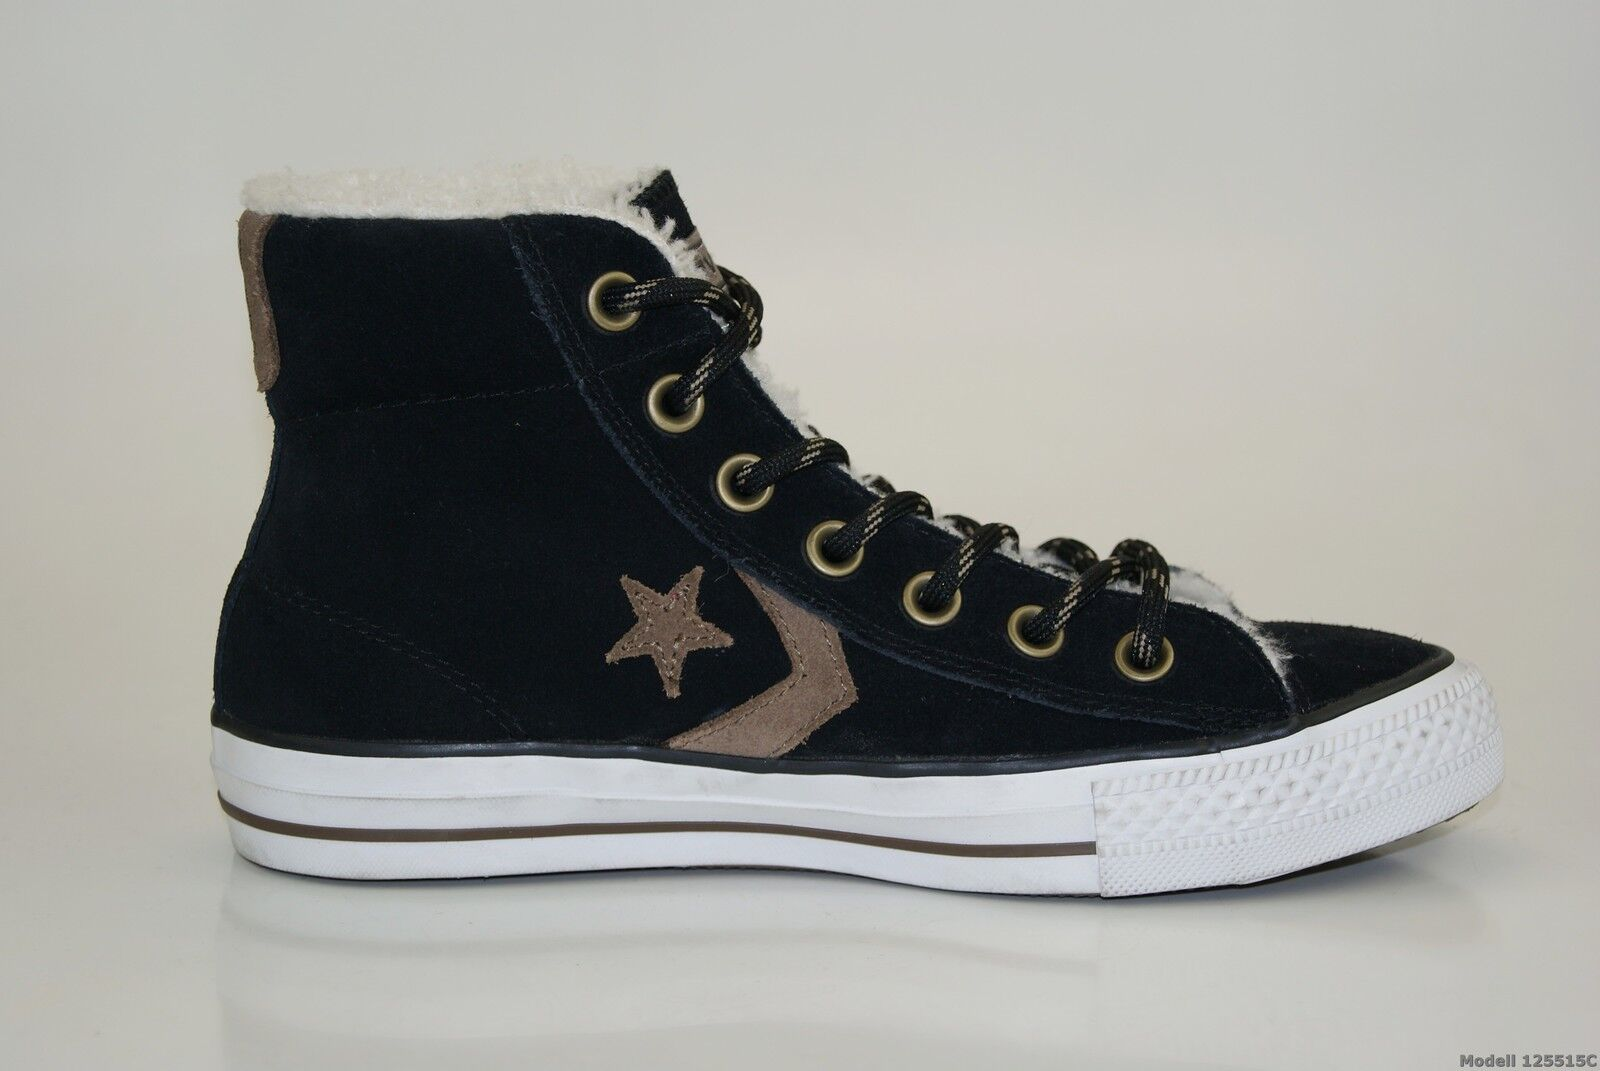 Converse Chuck Taylor All Stars Sneakers Trainers Men's Women's Winter Shoes NEW